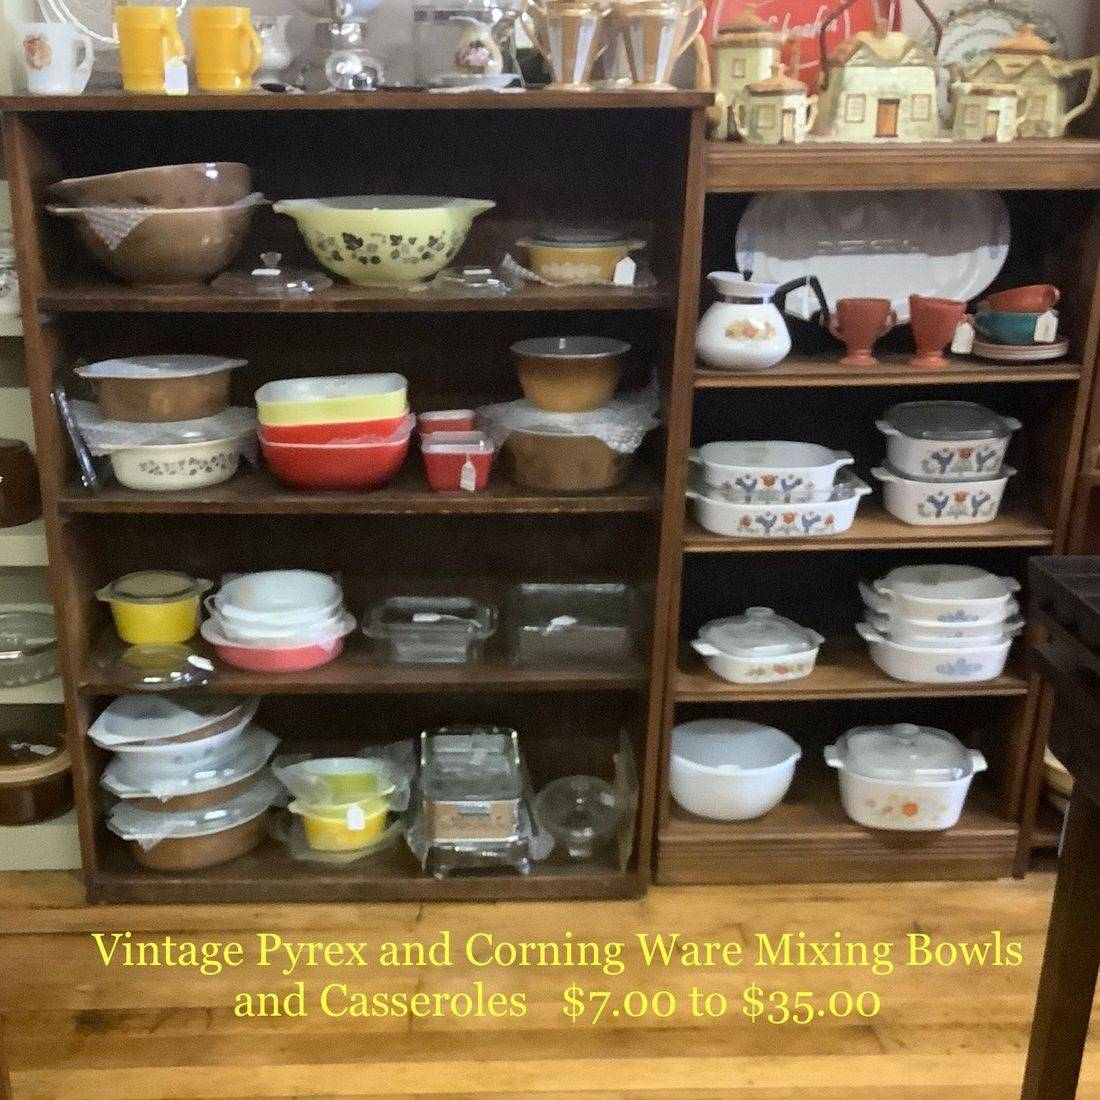 Vintage Pyrex and CorningWare Mixing Bowls and Casseroles    $7.00 - $35.00